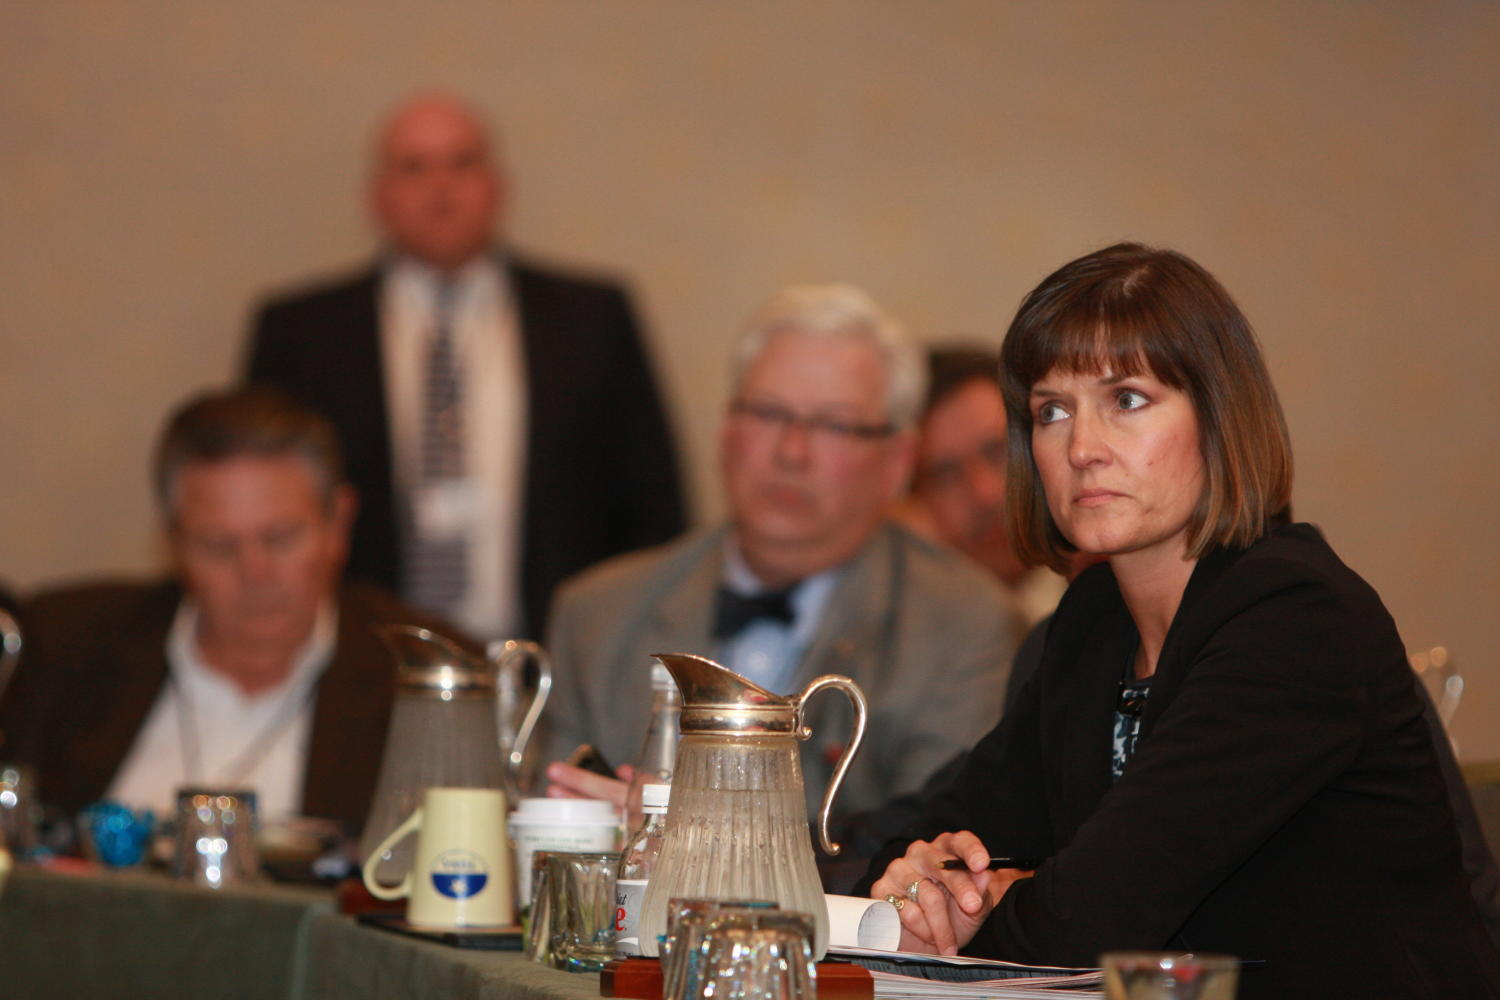 [Sandra Aven seated and attending a TDNA conference], Photograph of Sandra Aven seated at elongated tables with other guests as they are attending the 2010 Texas Daily Newspaper Association annual meeting held in Houston, Texas.,